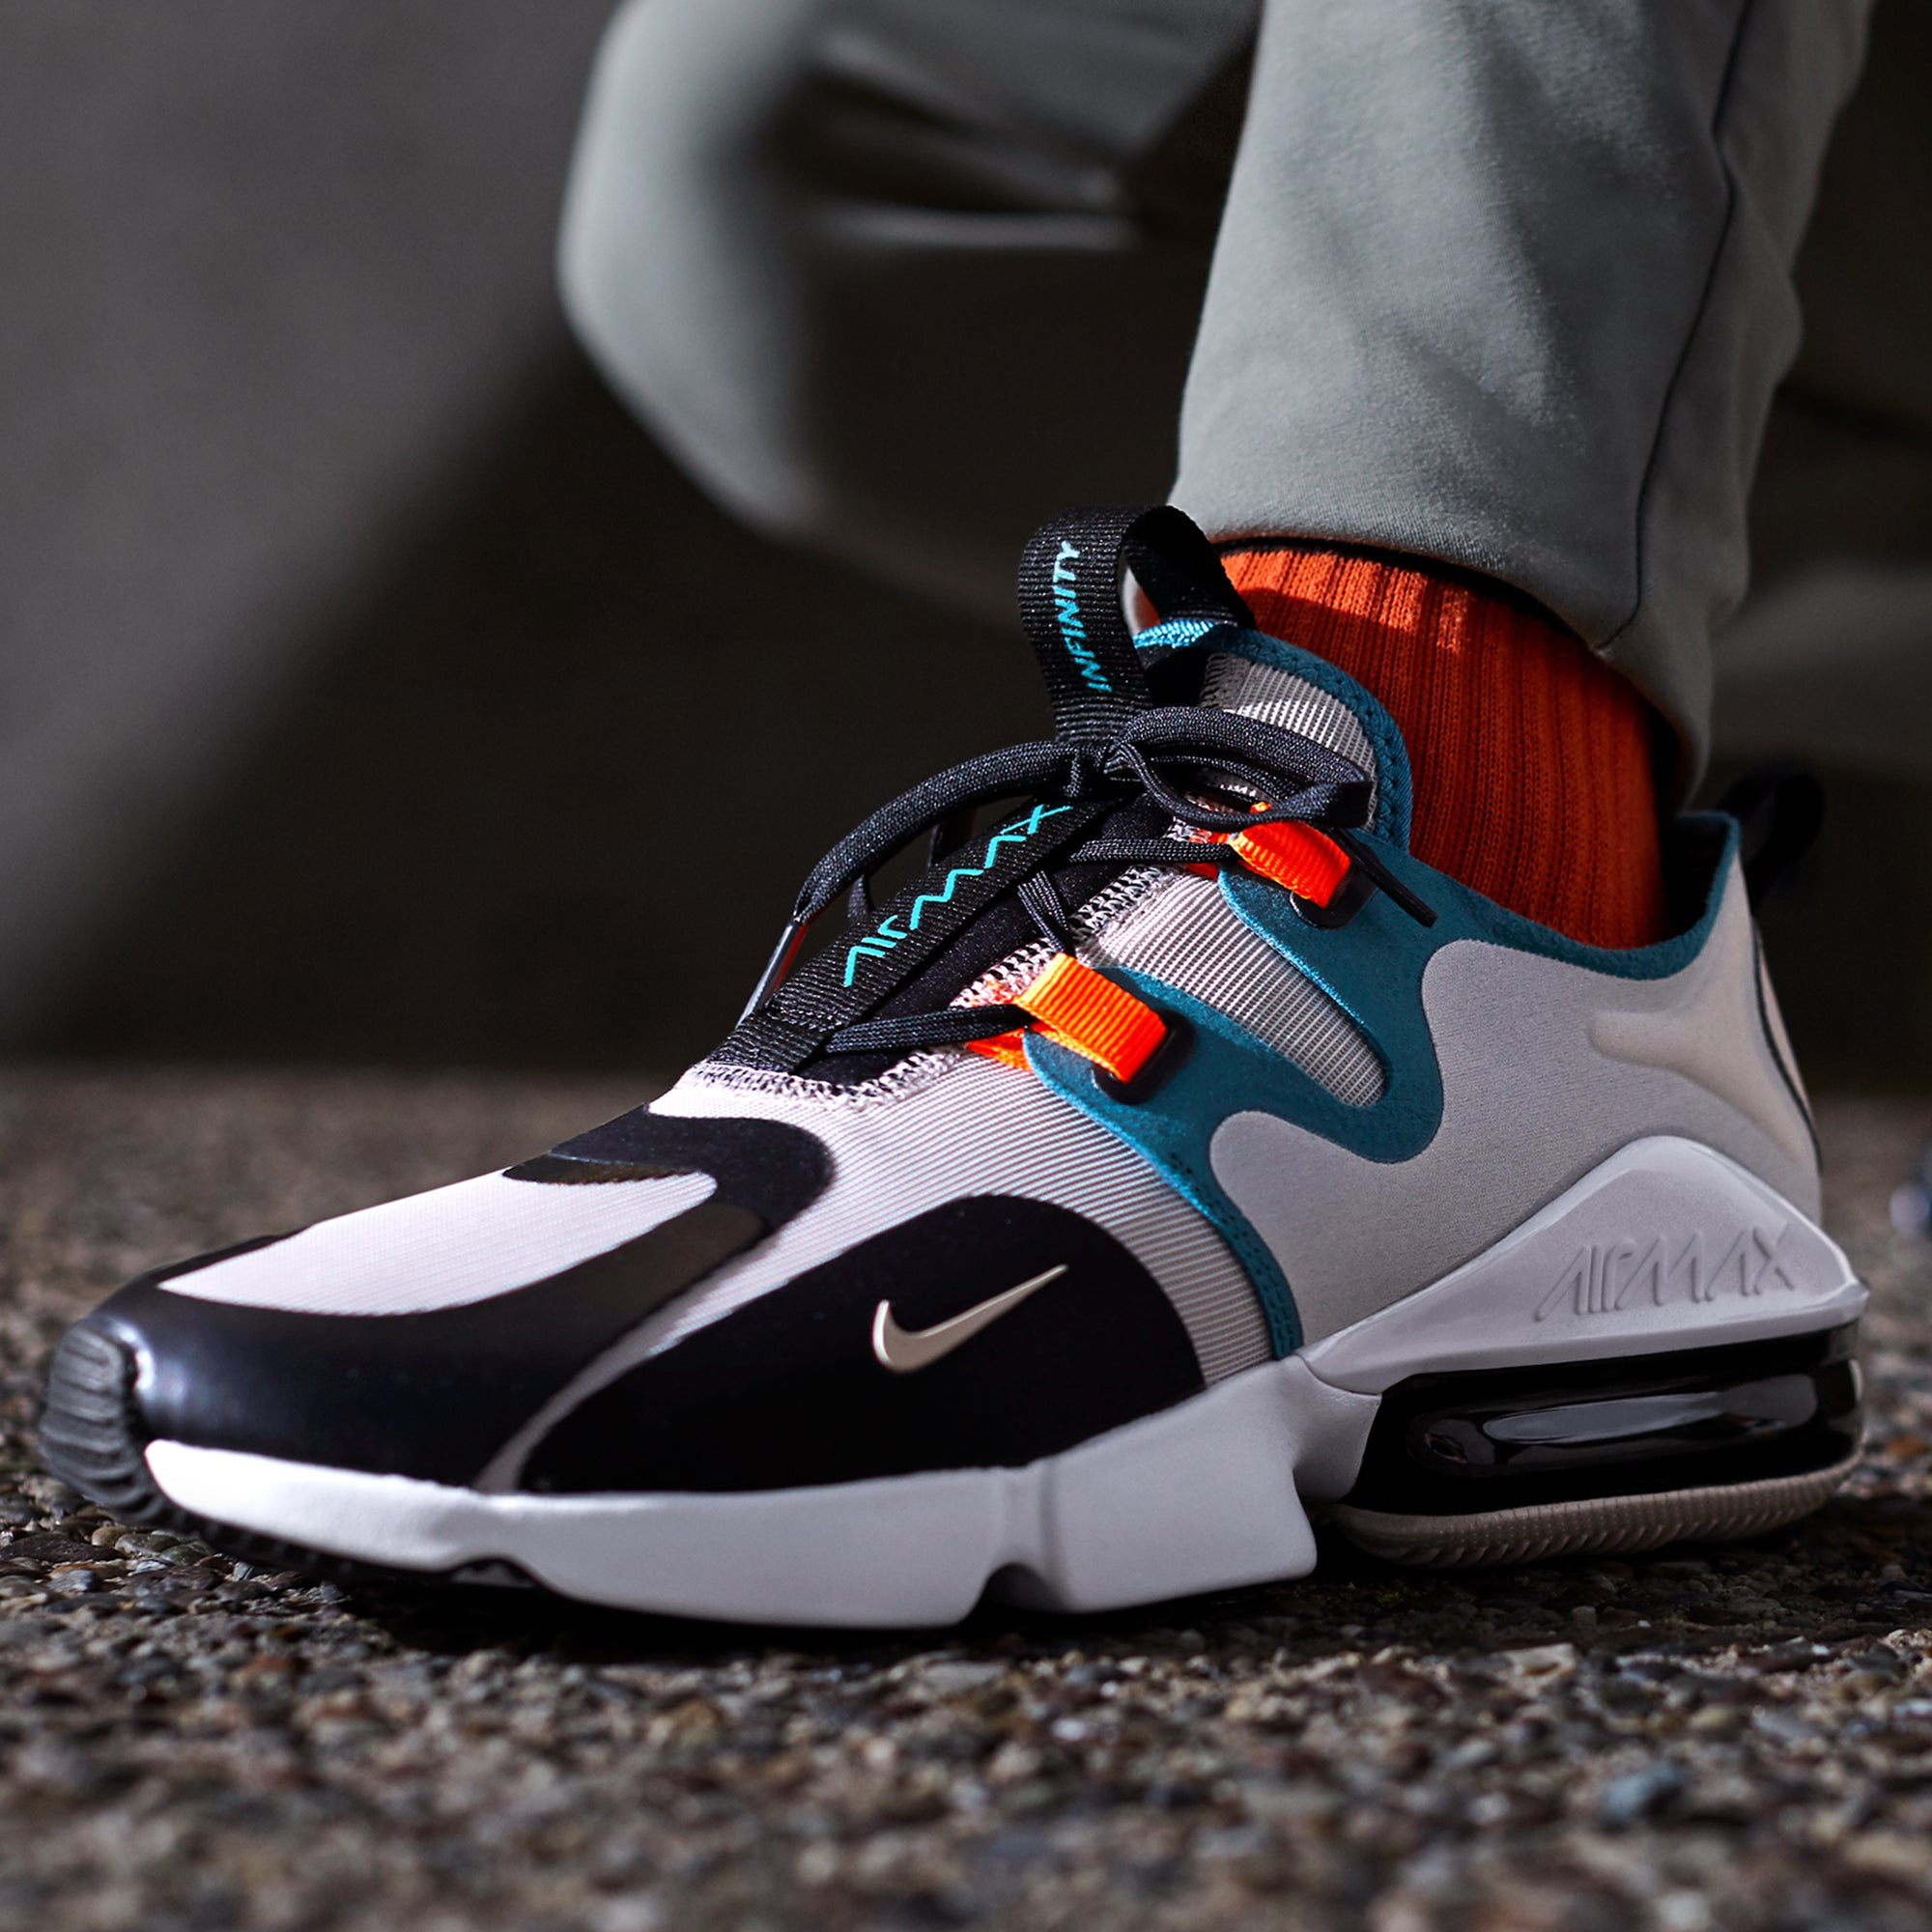 Nike Air Max Infinity Shoes Black Teal | Chicago City Sports